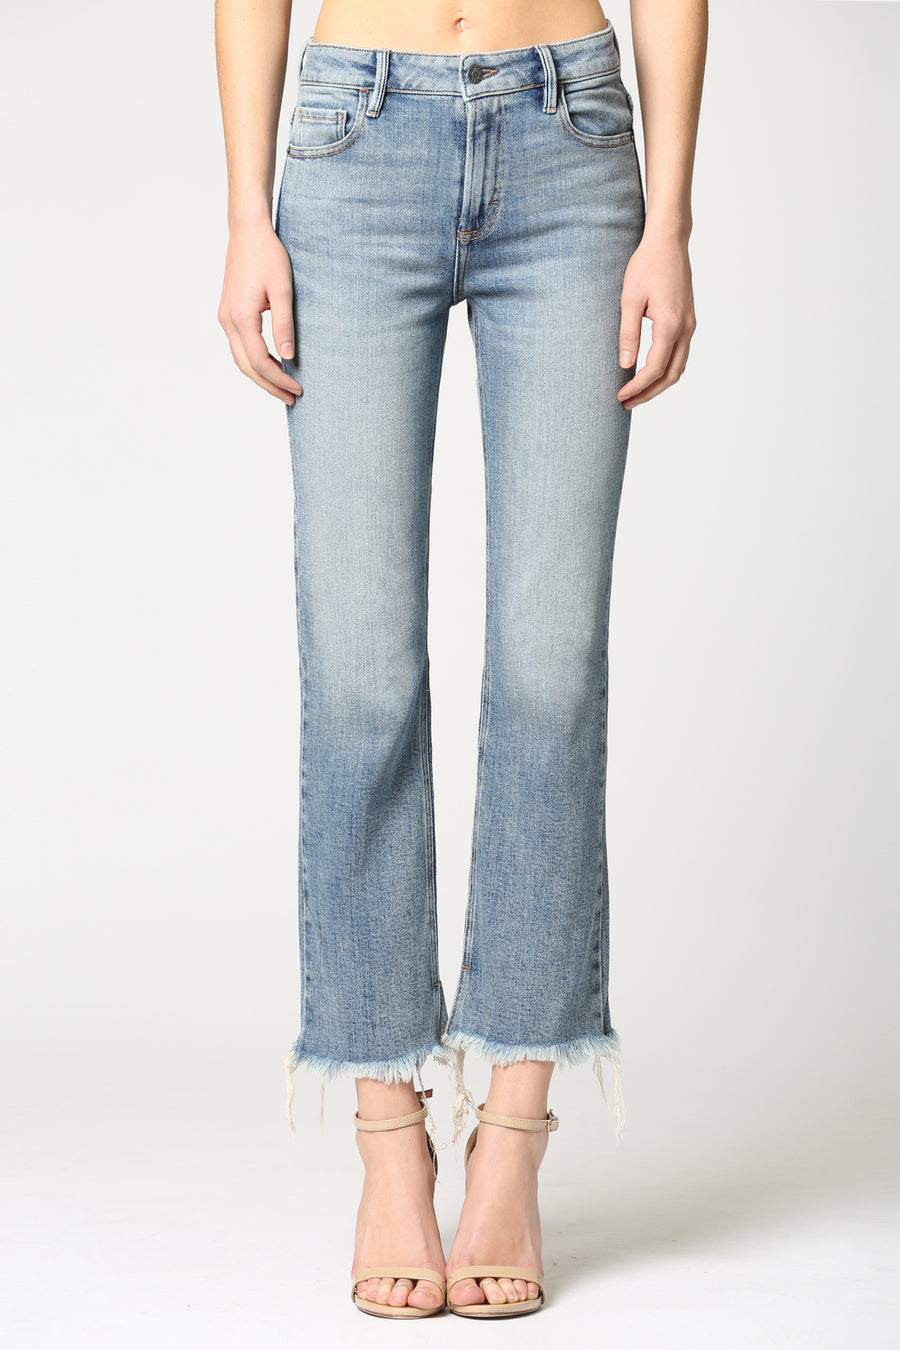 HAPPI<p/> MEDIUM WASH CLASSIC STRETCH CROPPED FLARE